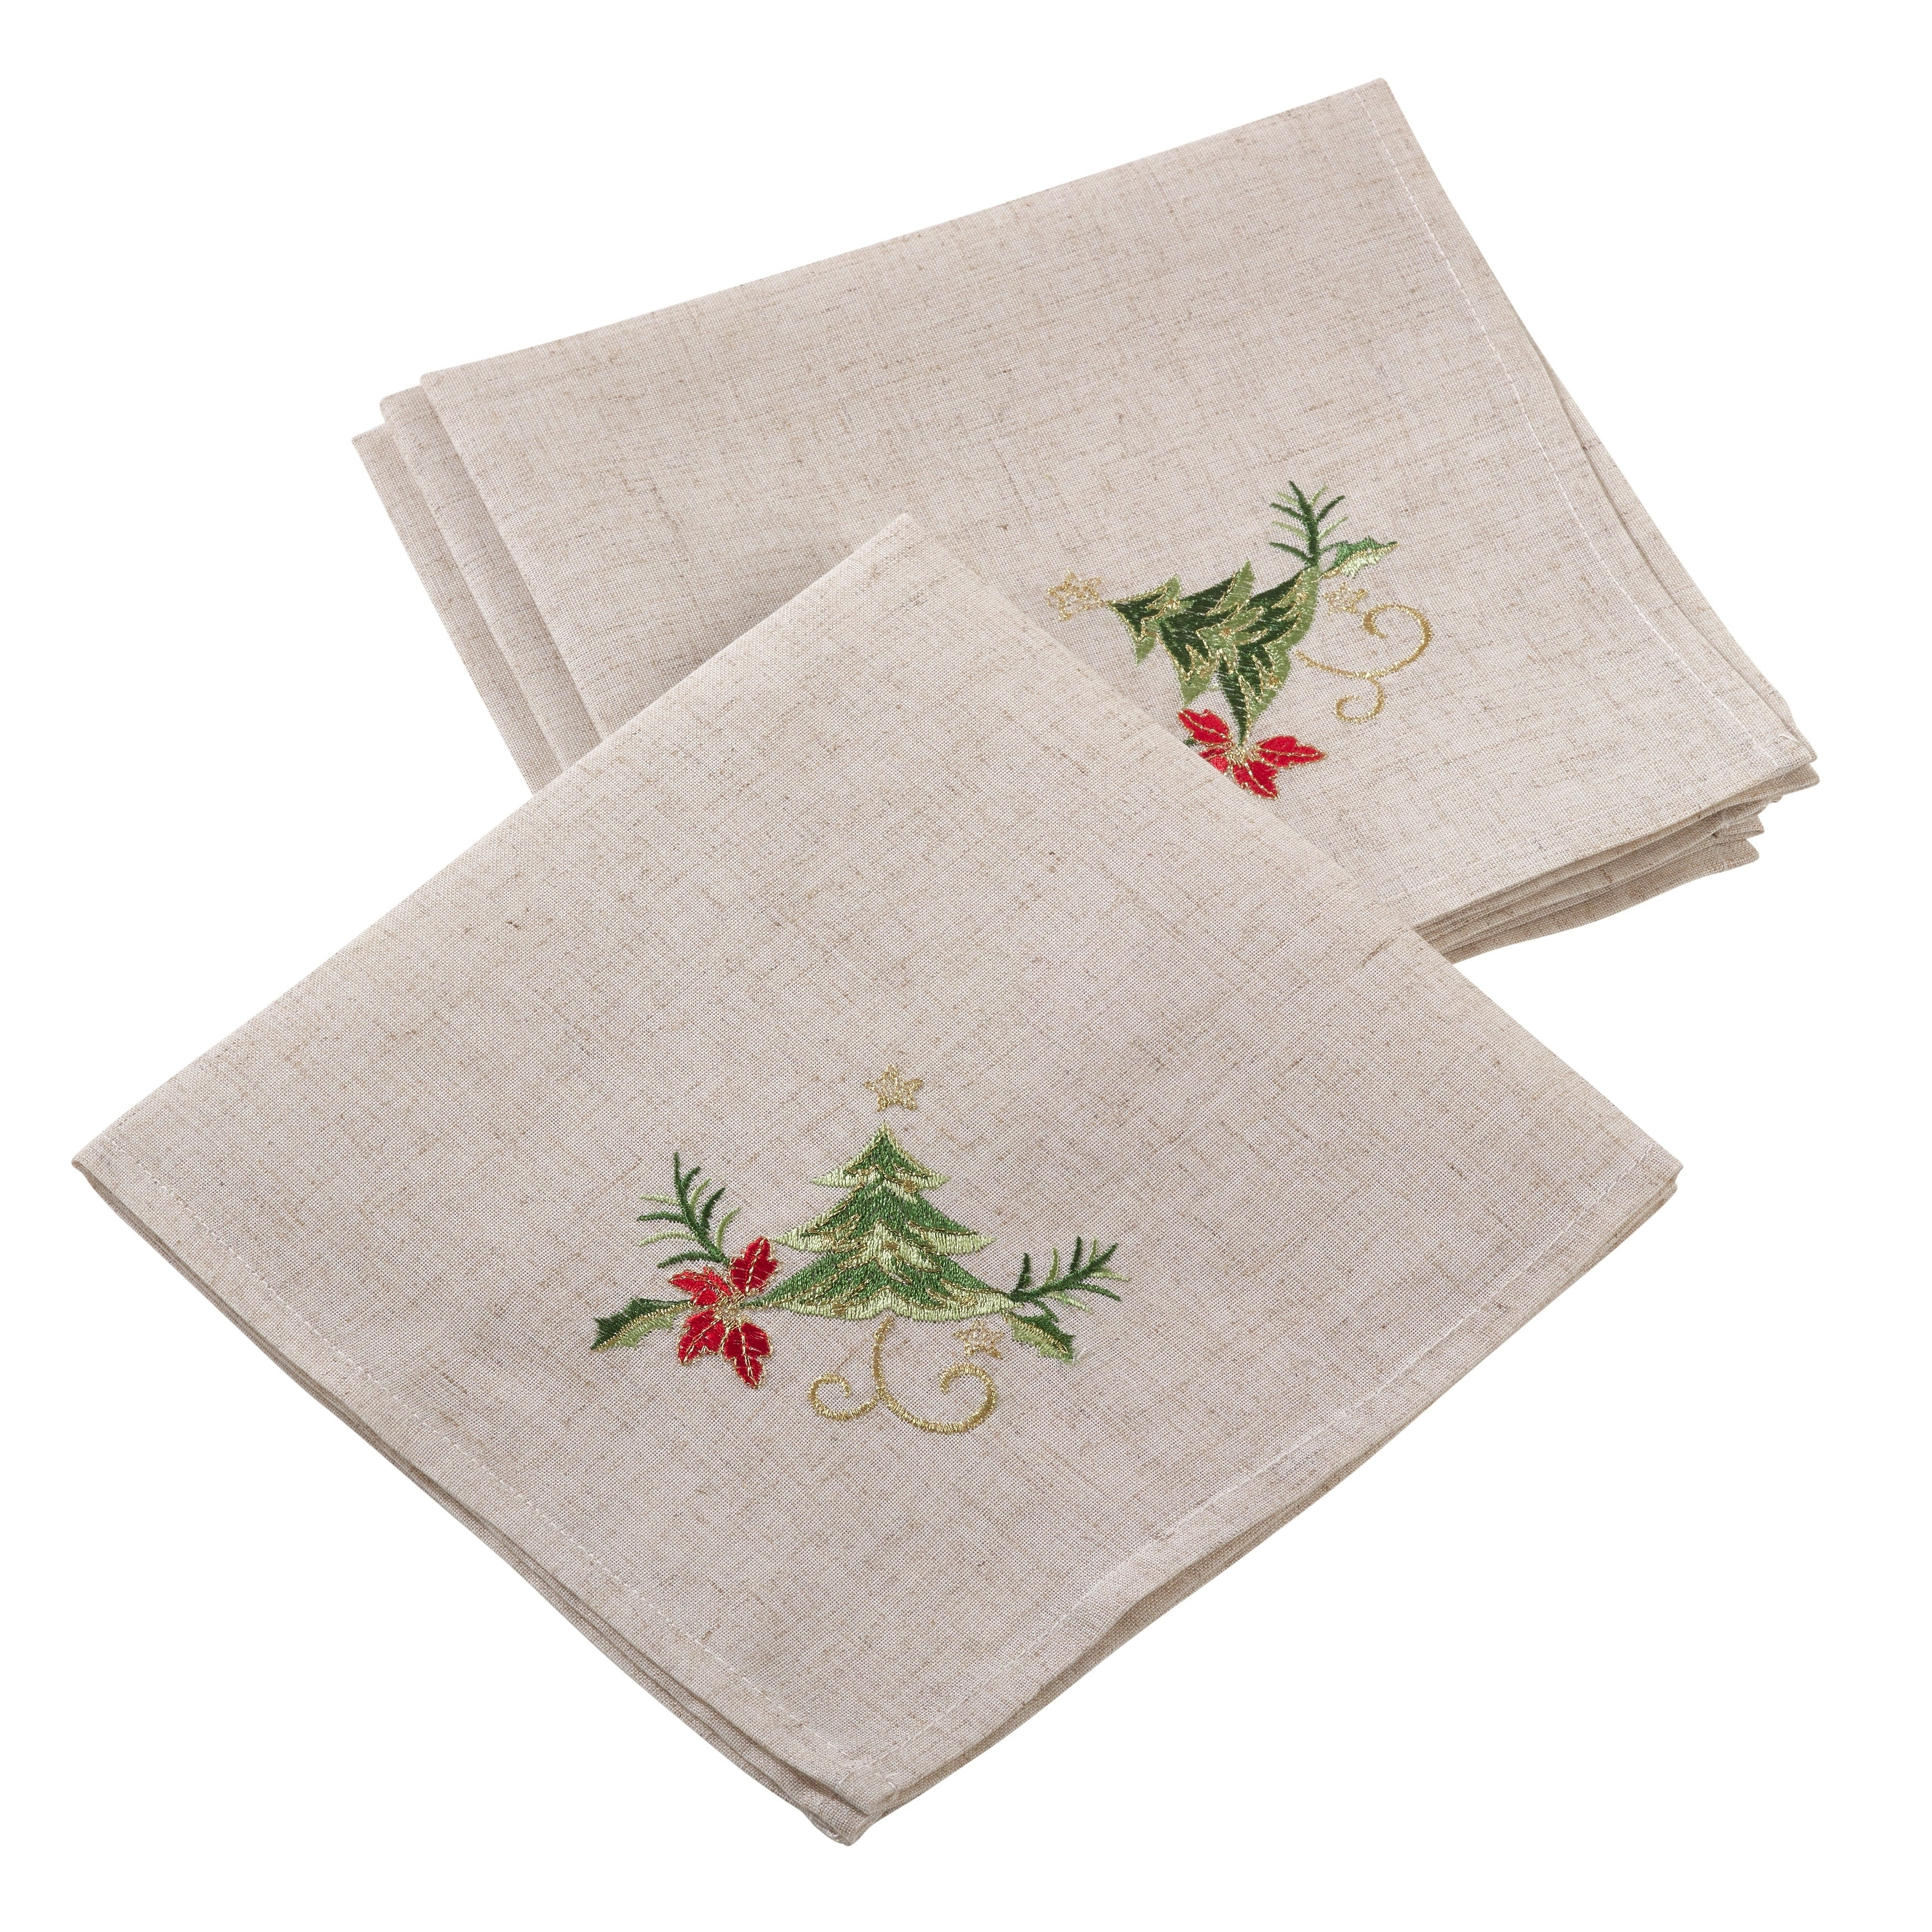 Embroidered Christmas Tree Design Holiday Linen Blend Napkin Set Overstock 17976033